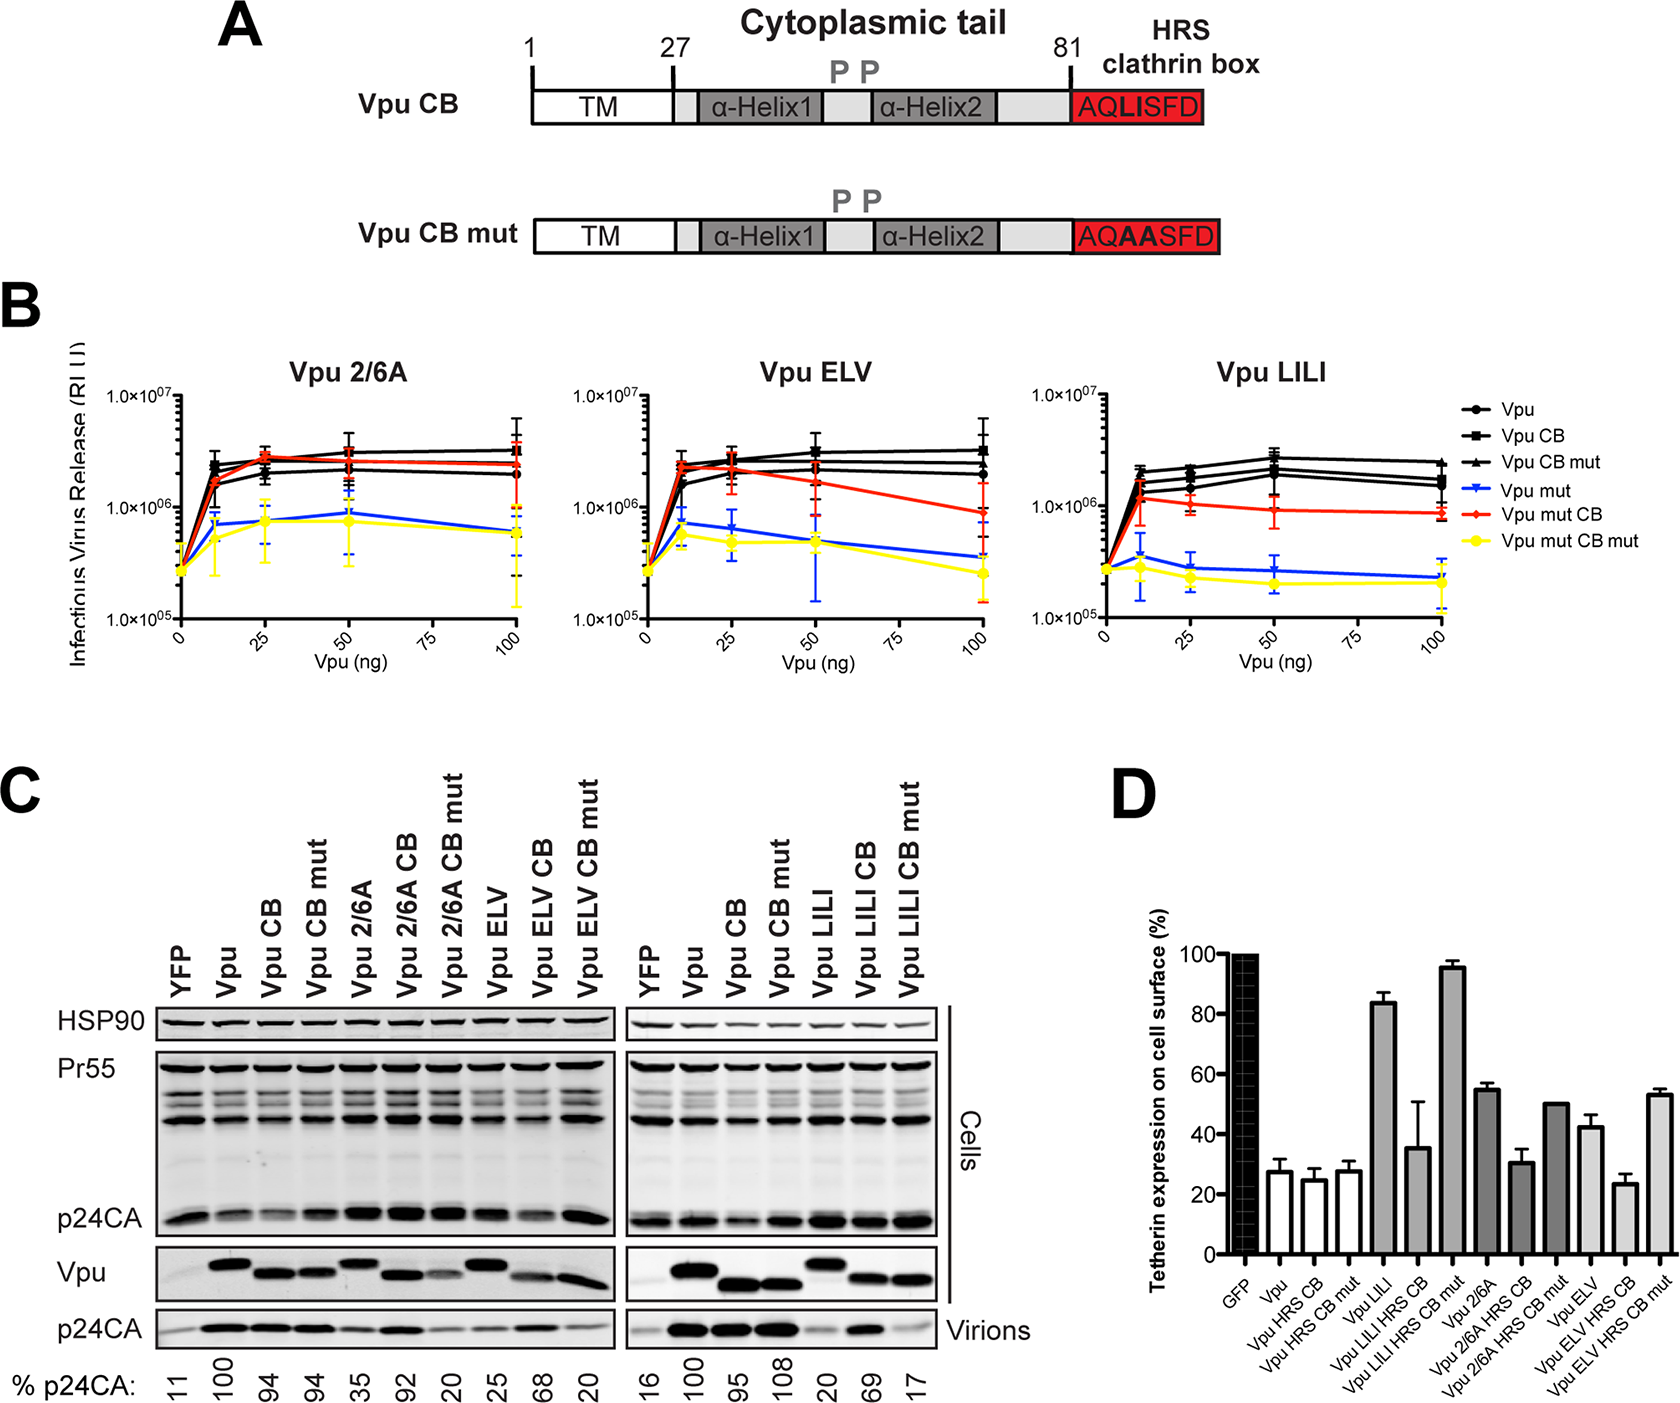 Functional rescue of Vpu phospho- and trafficking mutants by direct interaction with clathrin.